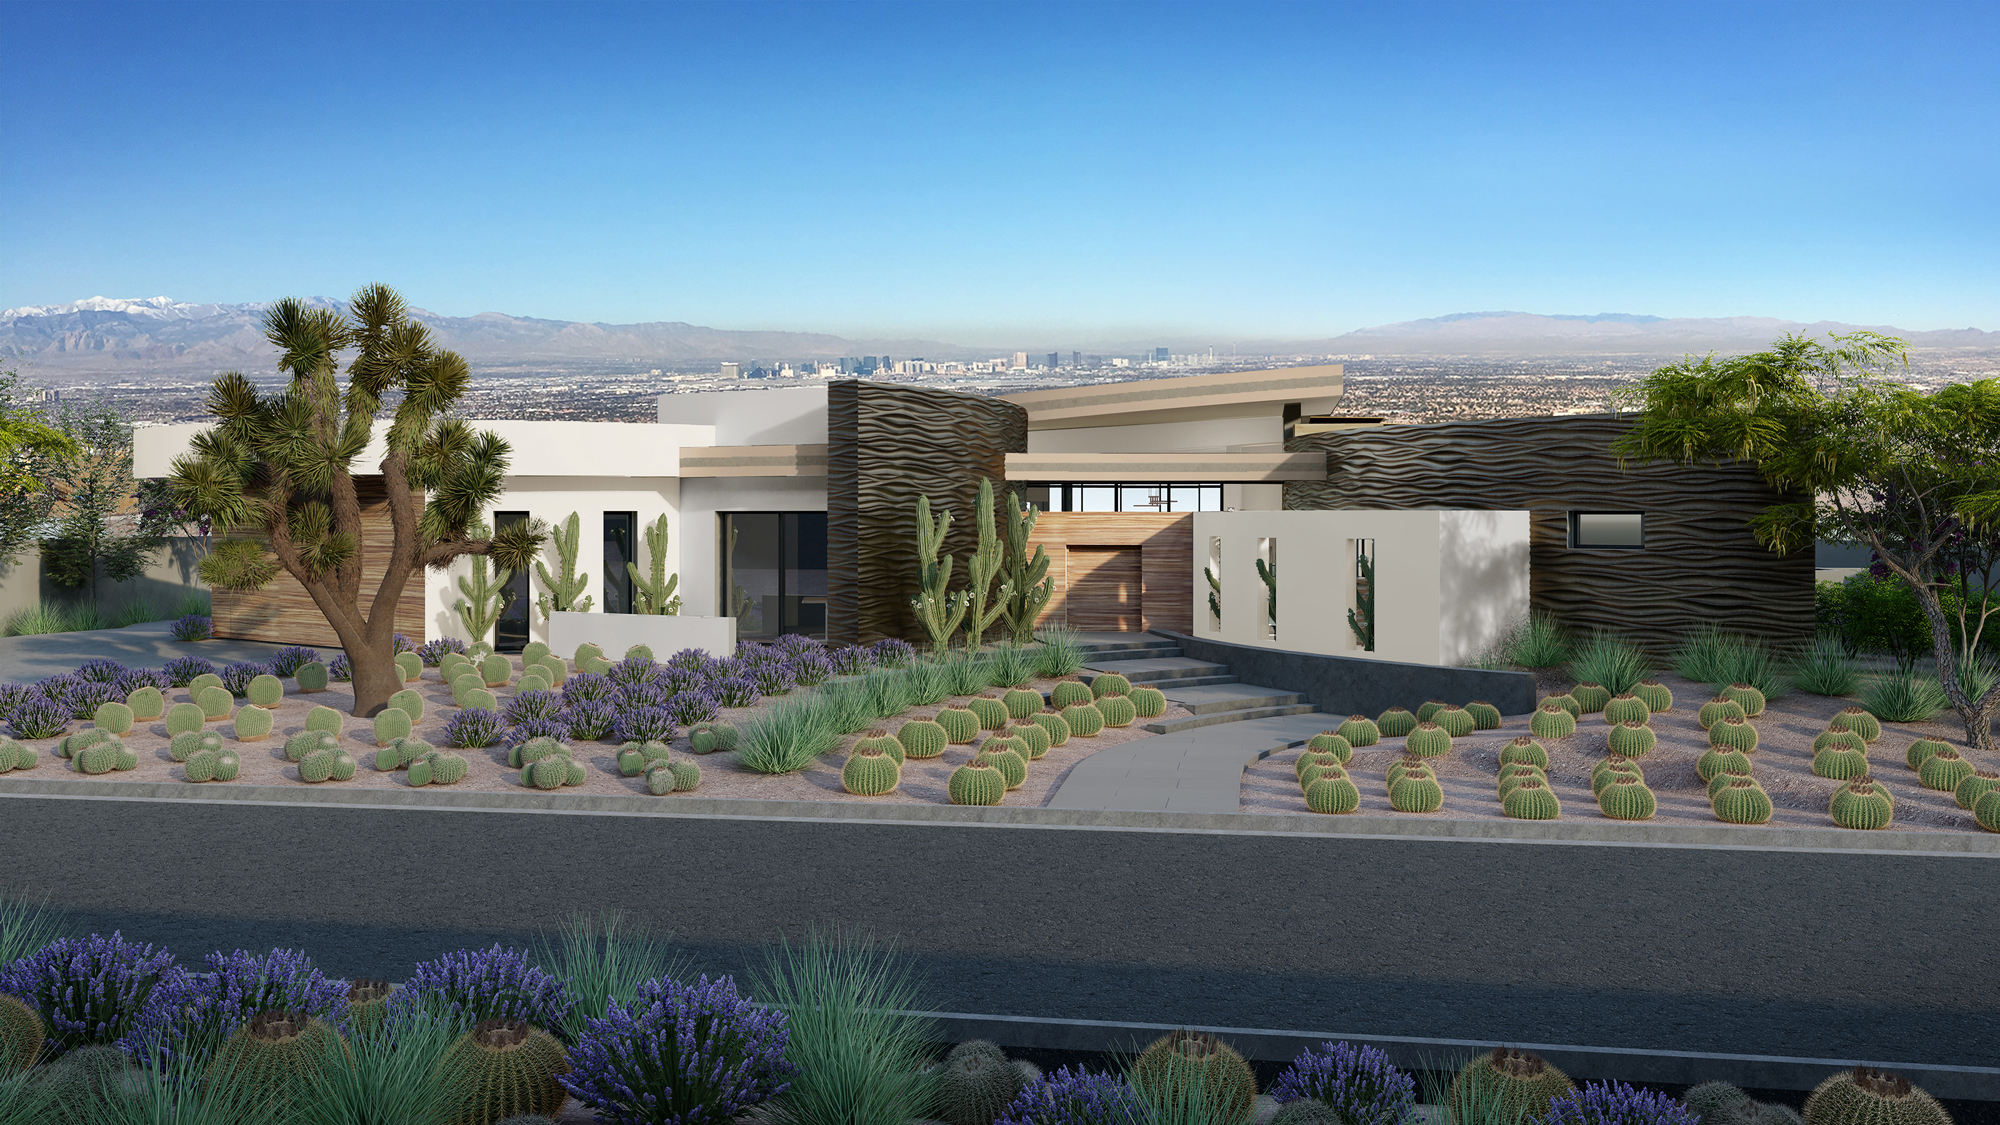 New American Home 2020 The New American Home 2020 Lives at Ascaya   Ascaya